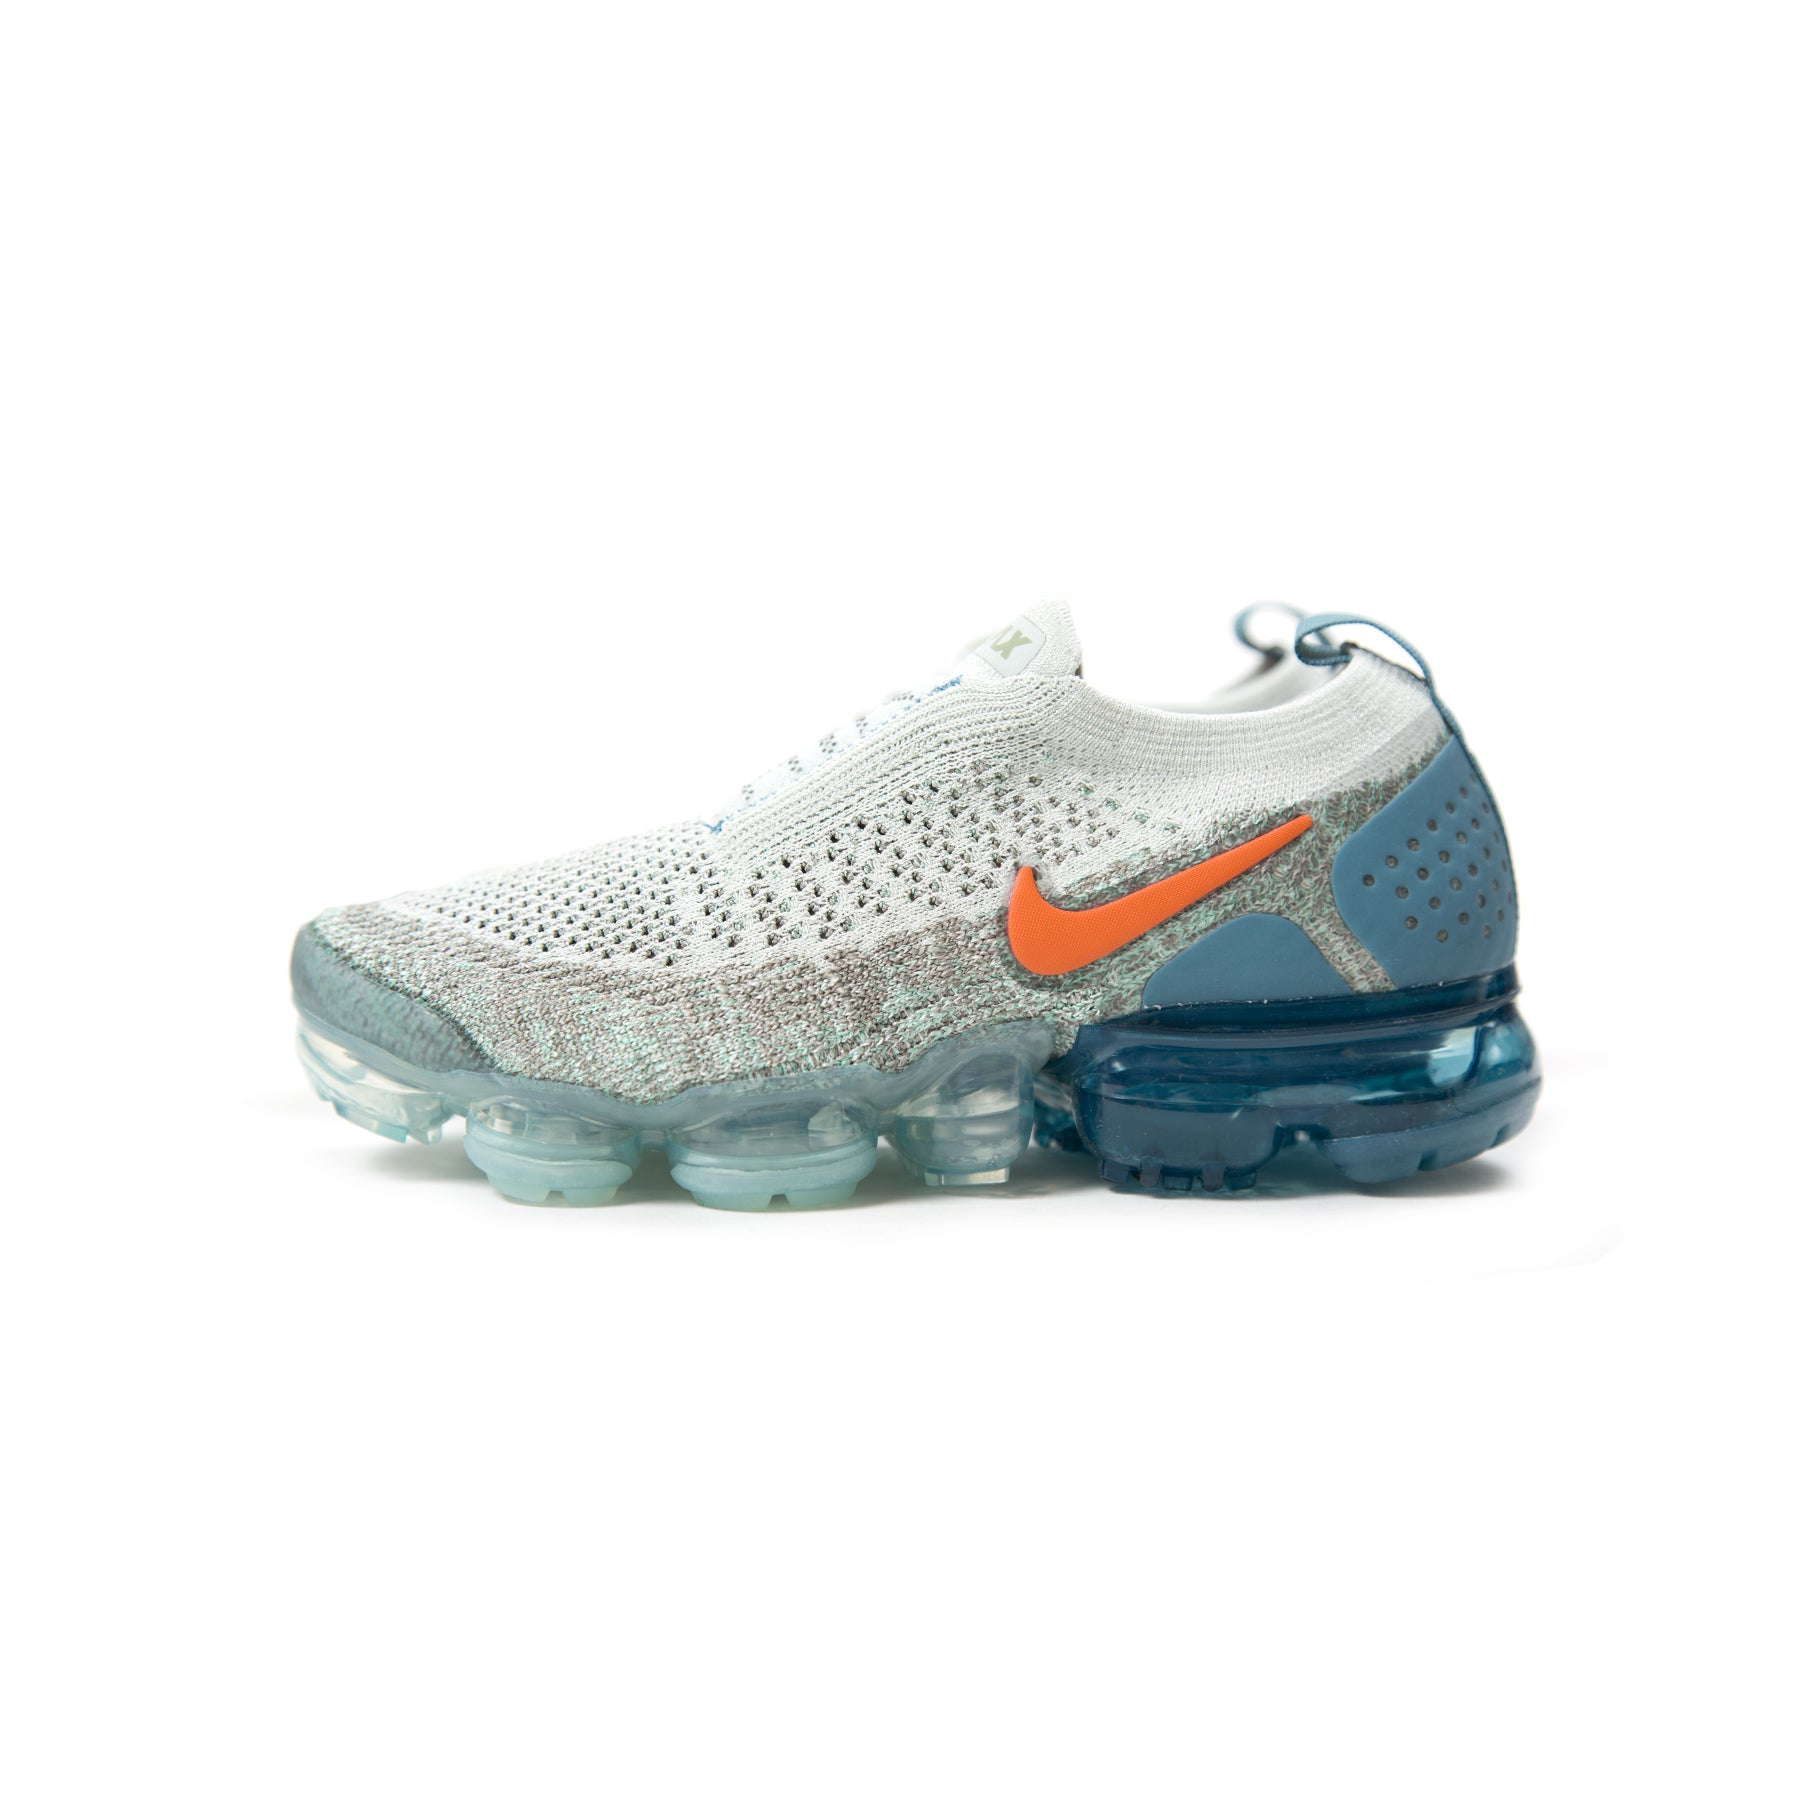 best service 96319 a0c43 ConceptsIntl | Nike Womens Air Vapormax Flyknit Moc 2 (Light ...